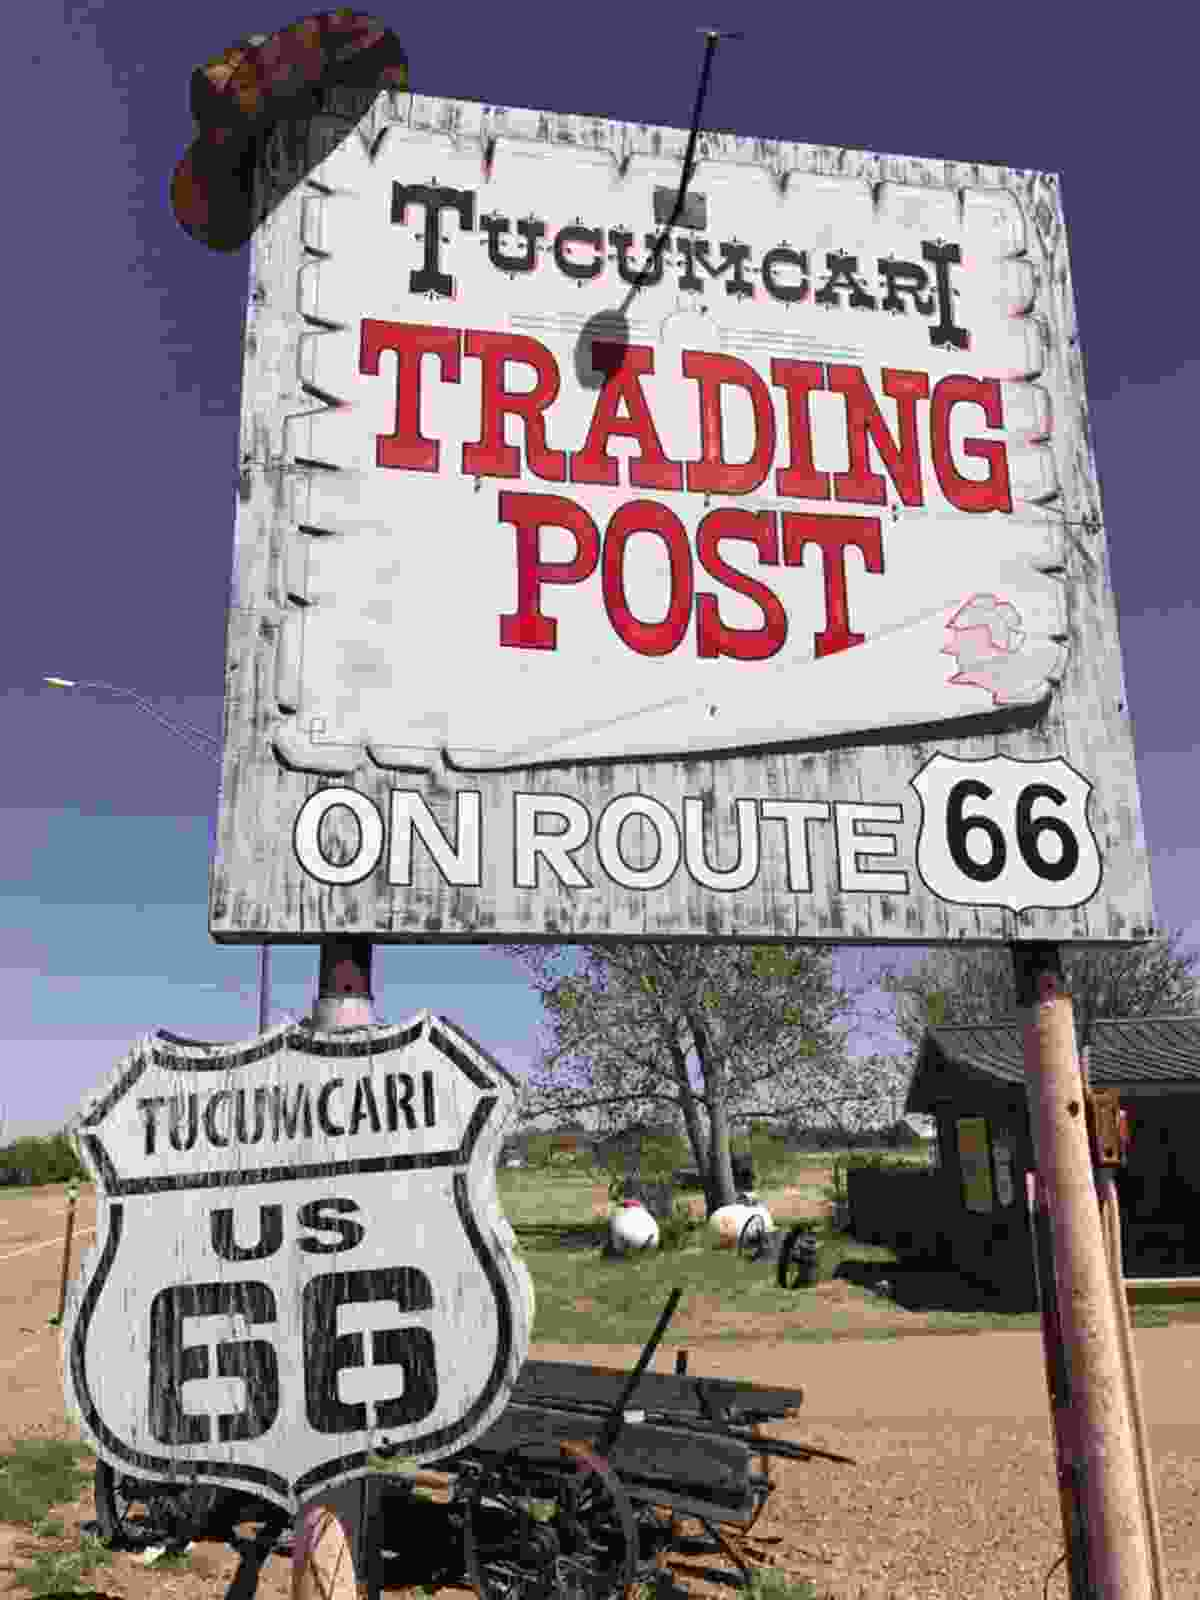 Tucumcari Trading Post, New Mexico (Rick Sammon)